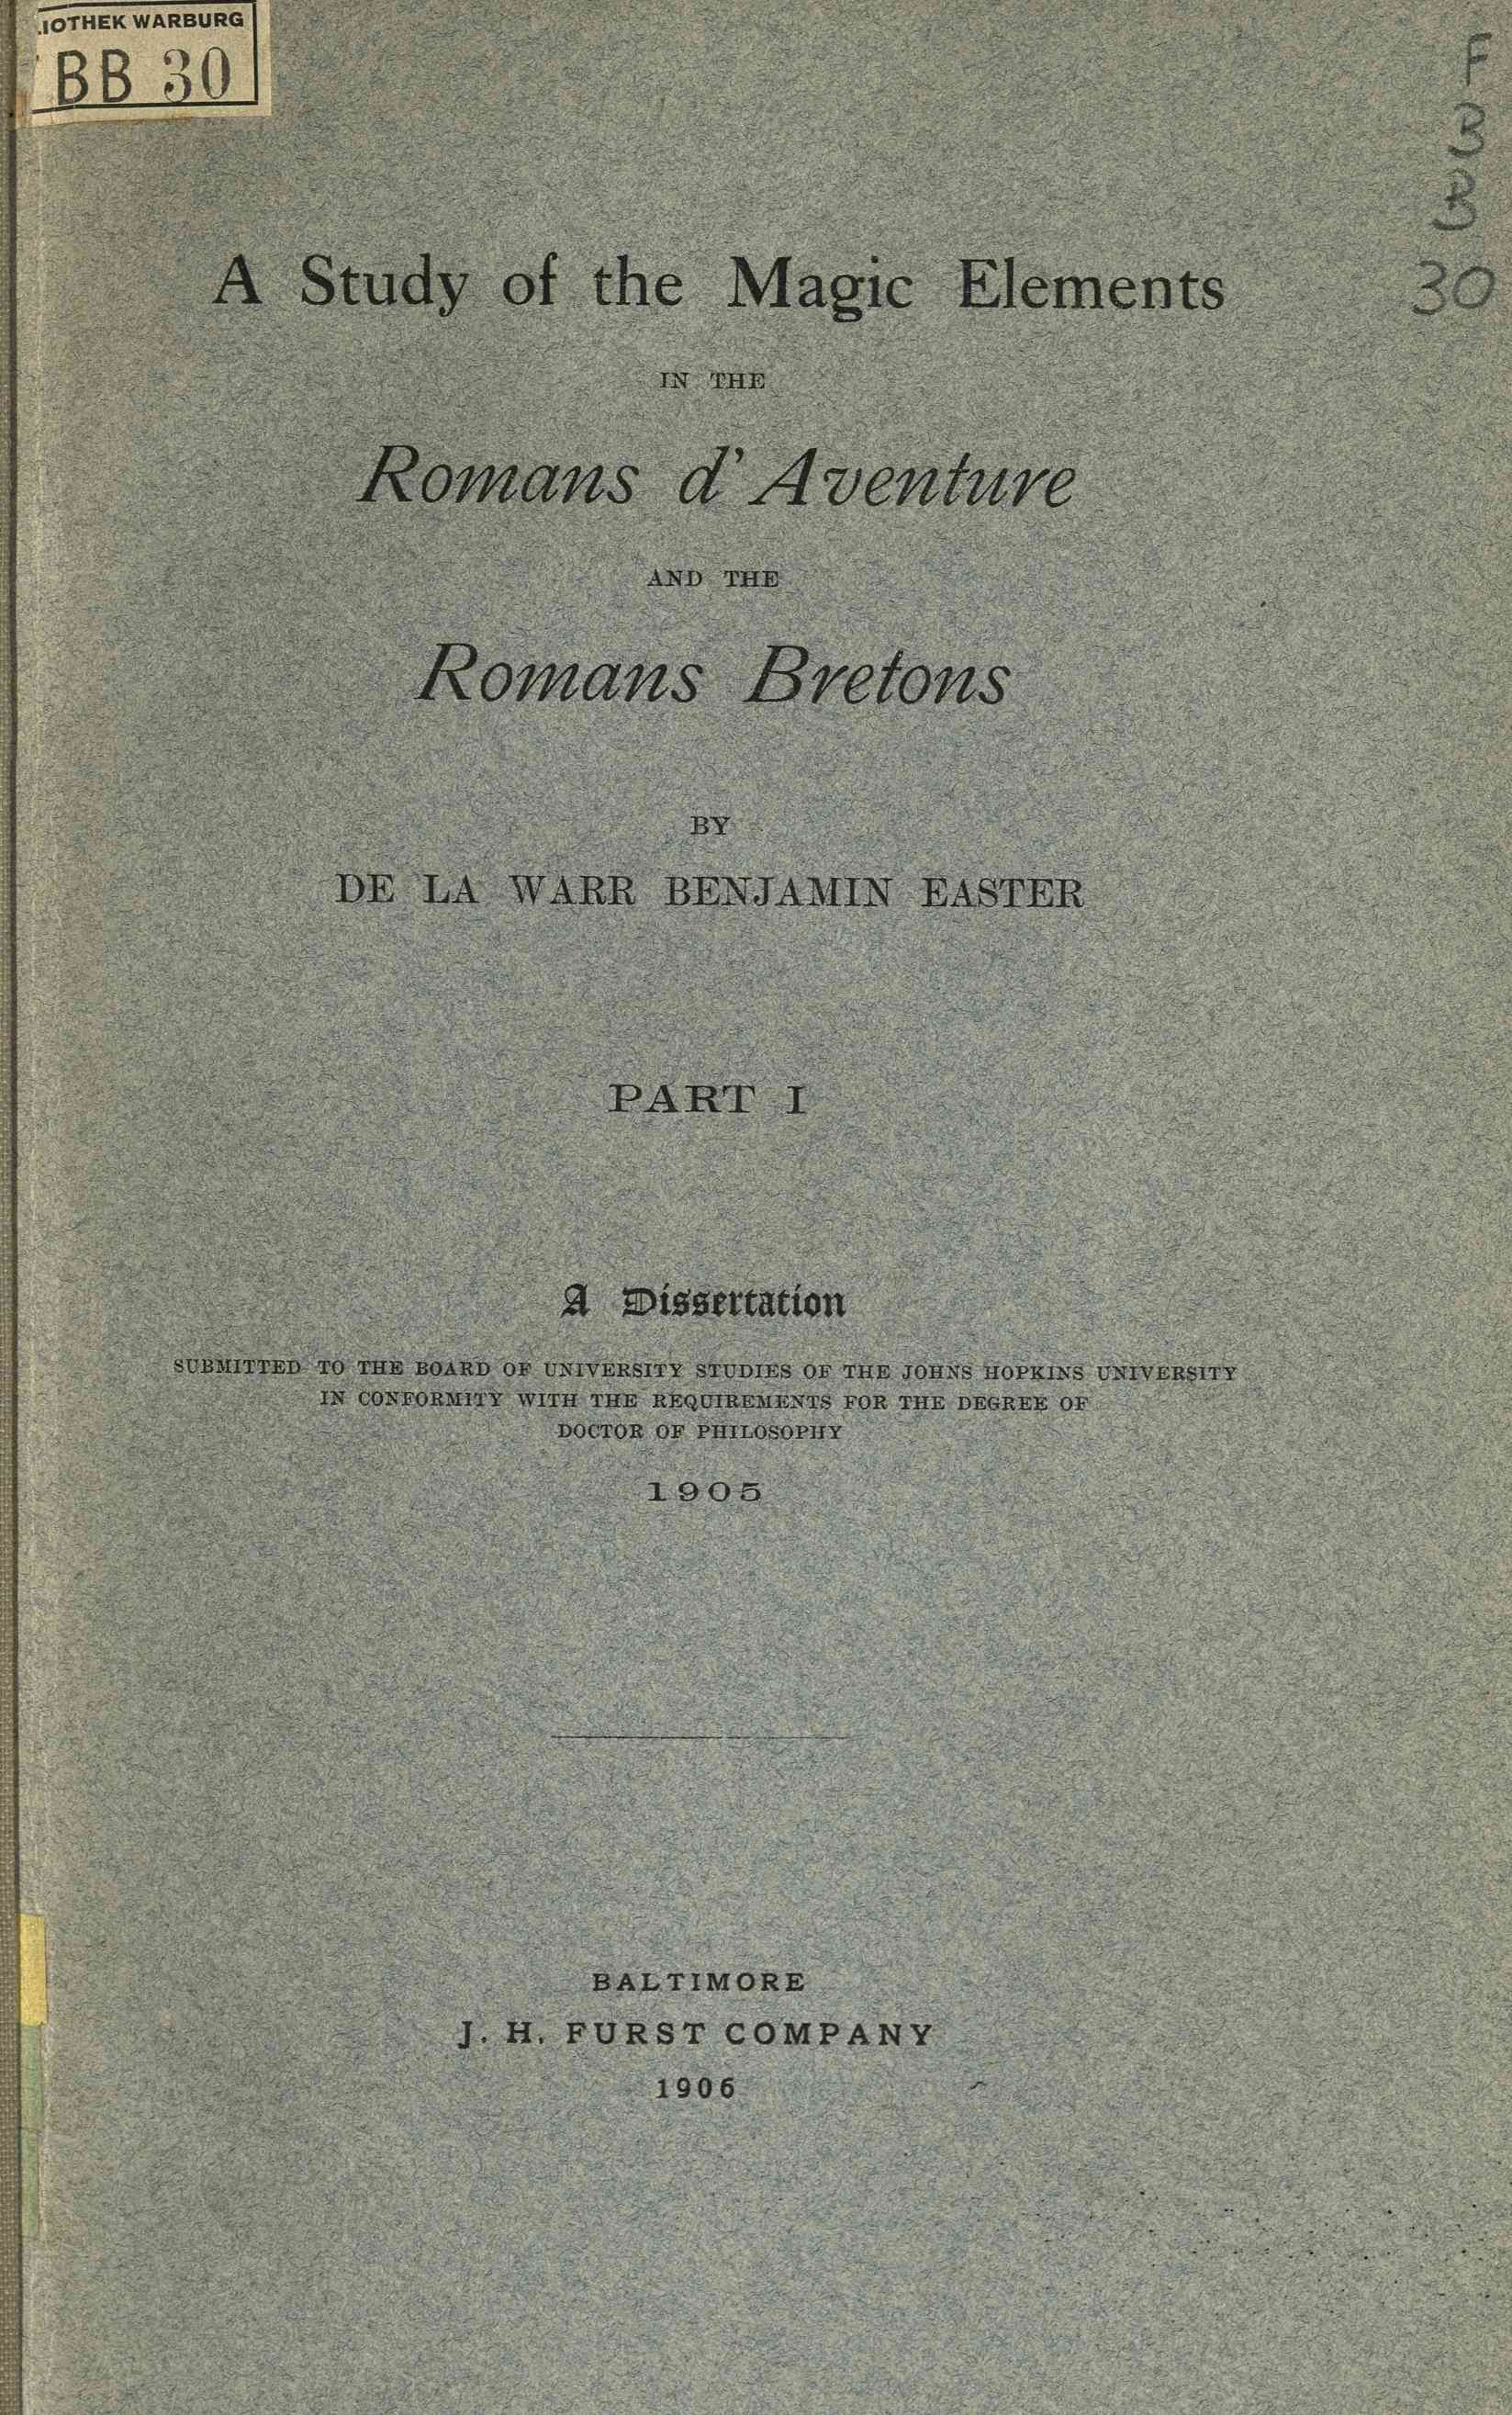 Study of the magic elements in the romans d'aventure and the romans bretons